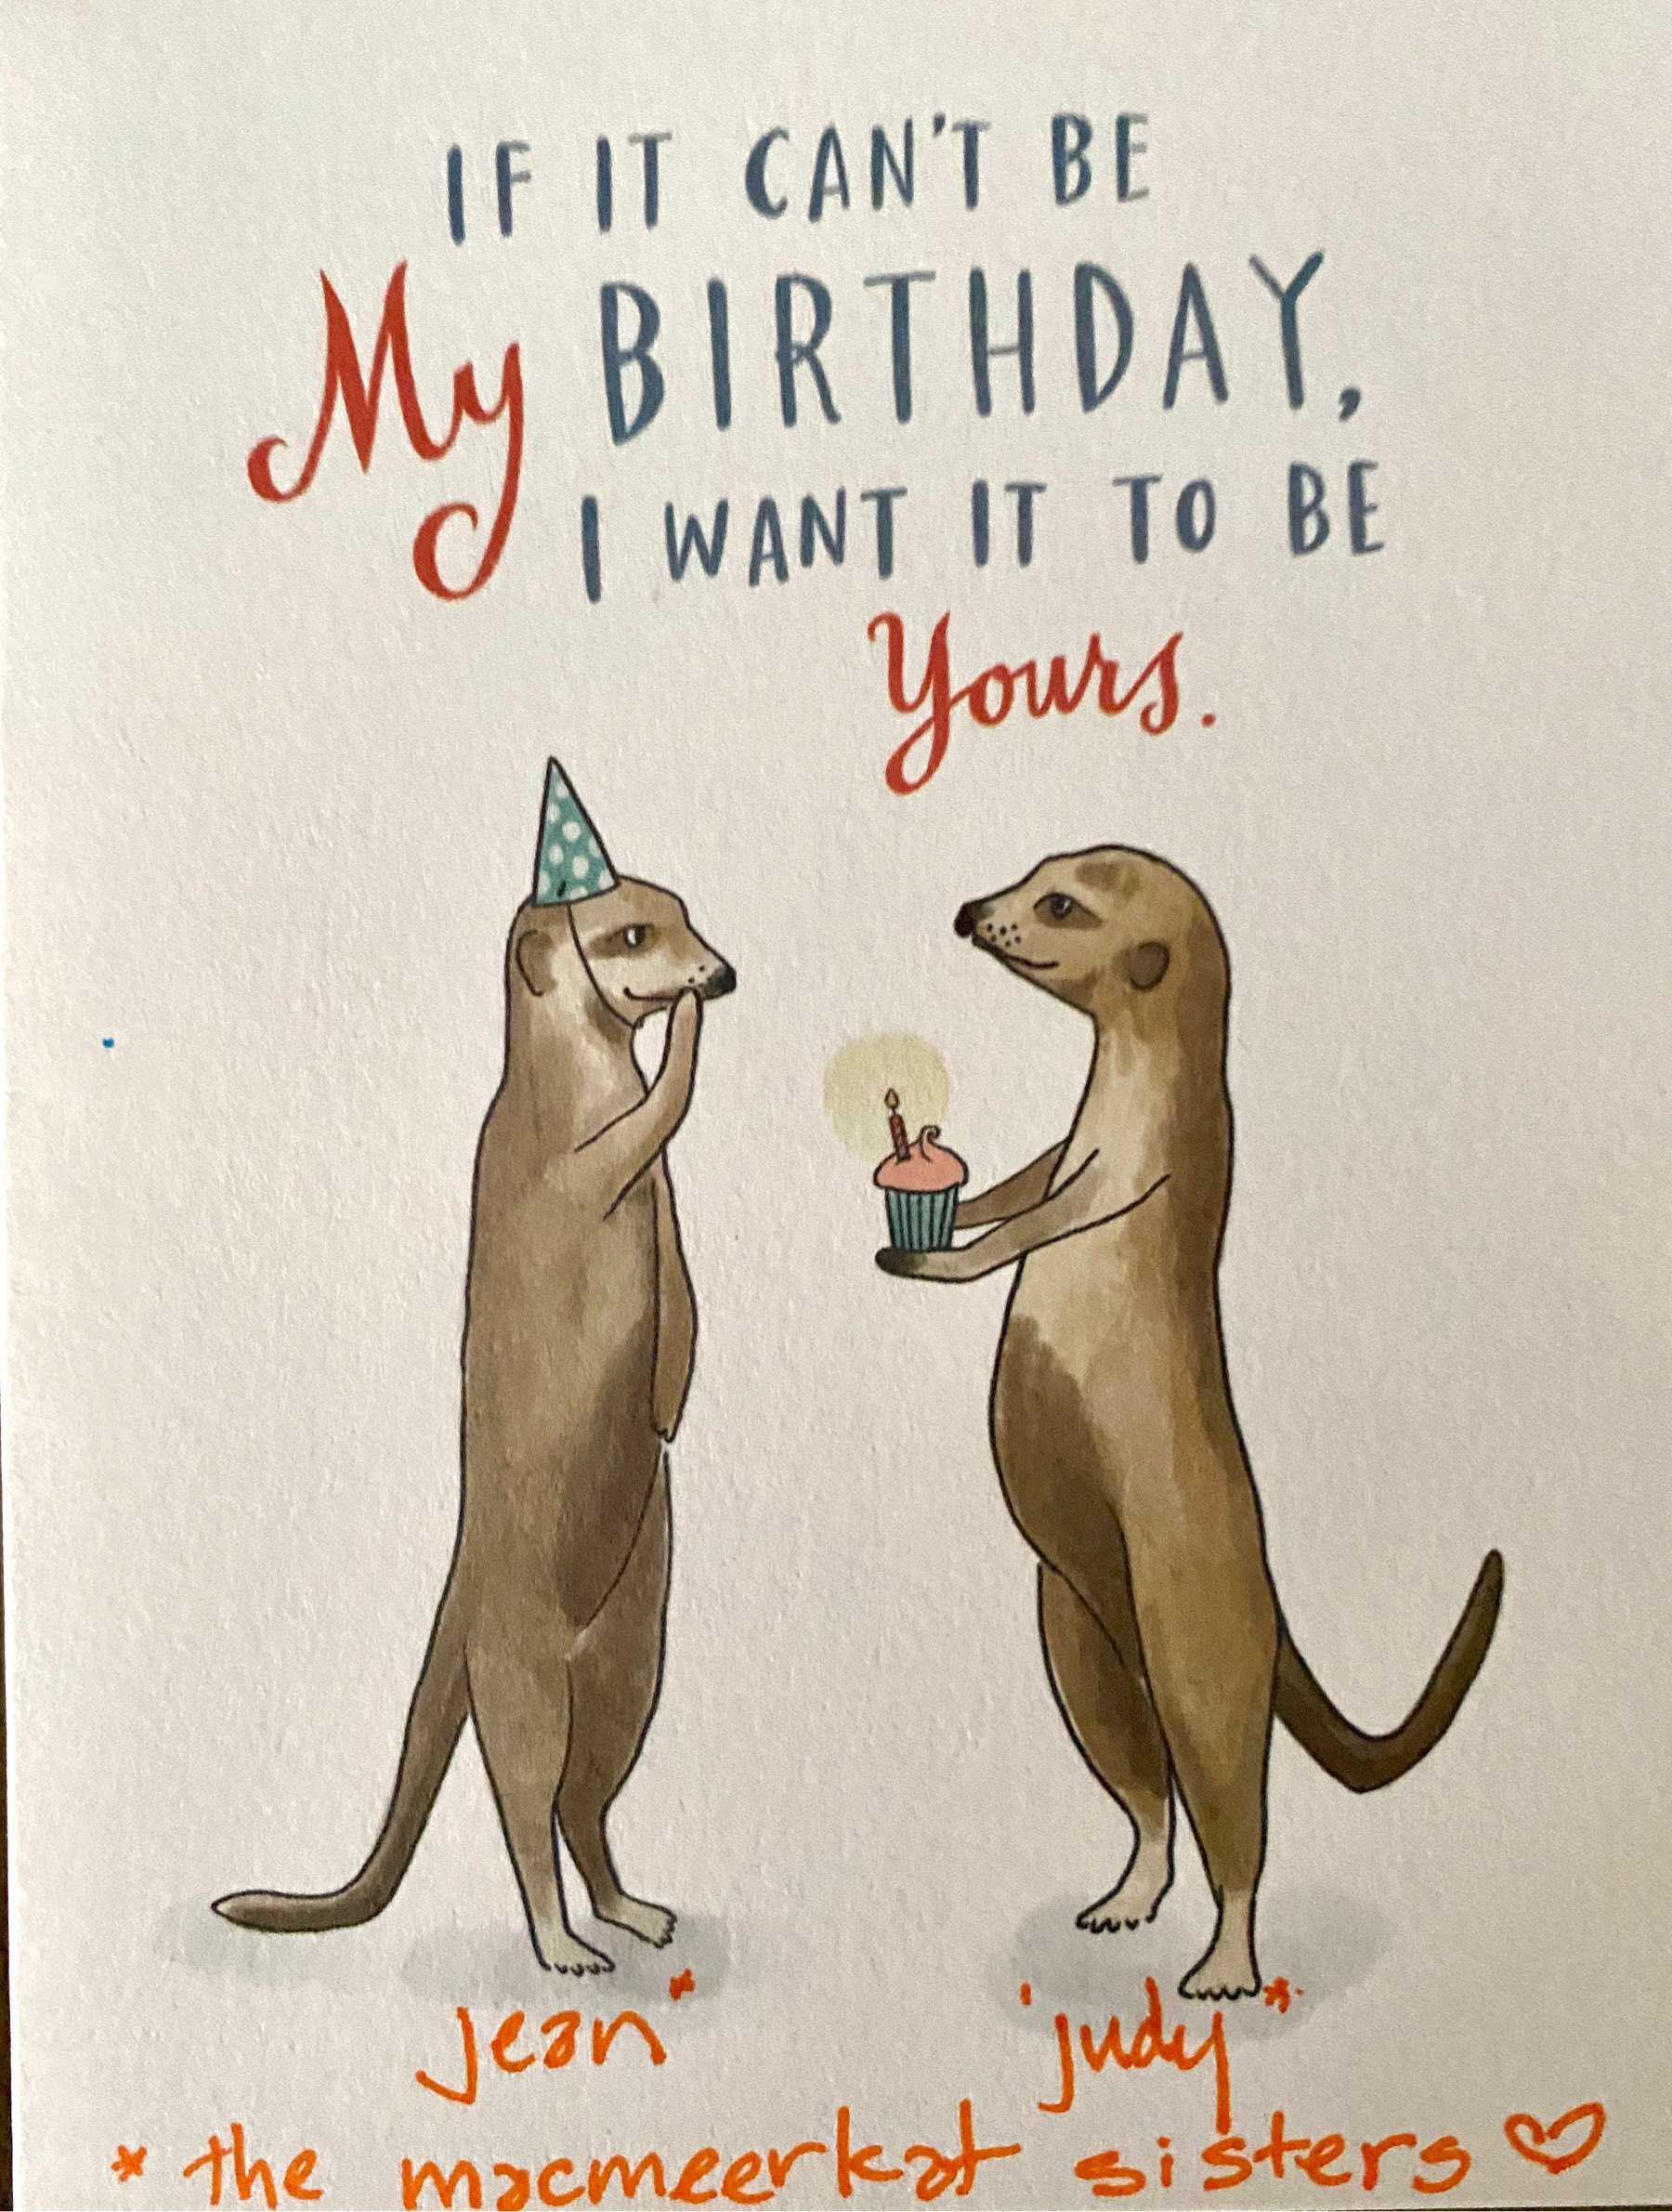 birthday card featuring two meerkats